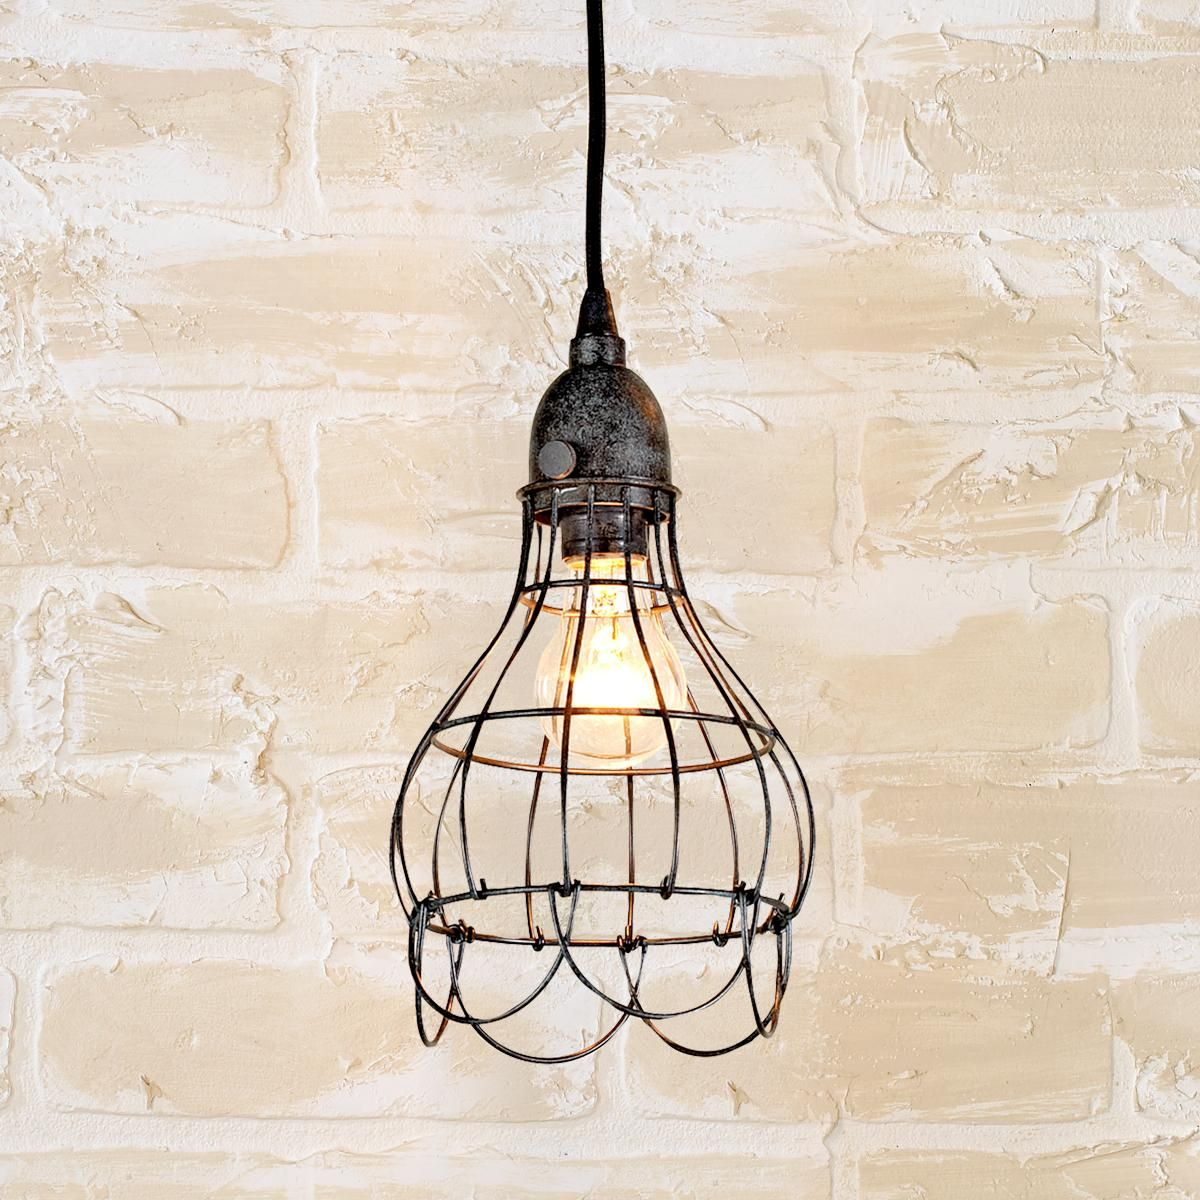 Industrial Cage Work Light Pendant Antique Lamp Shades Hanging